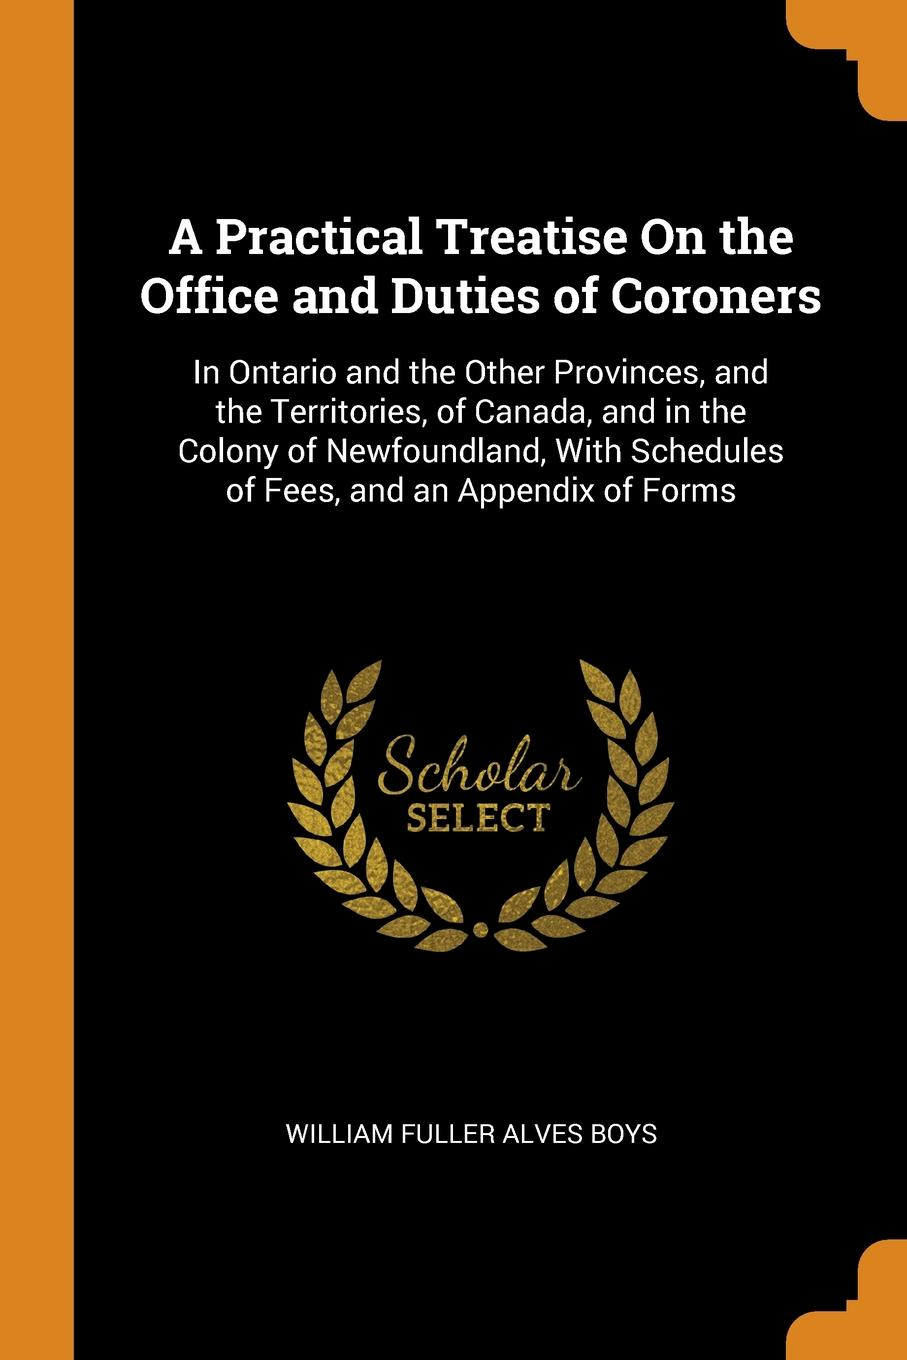 A Practical Treatise On the Office and Duties of Coroners. In Ontario and the Other Provinces, and the Territories, of Canada, and in the Colony of Newfoundland, With Schedules of Fees, and an Appendix of Forms